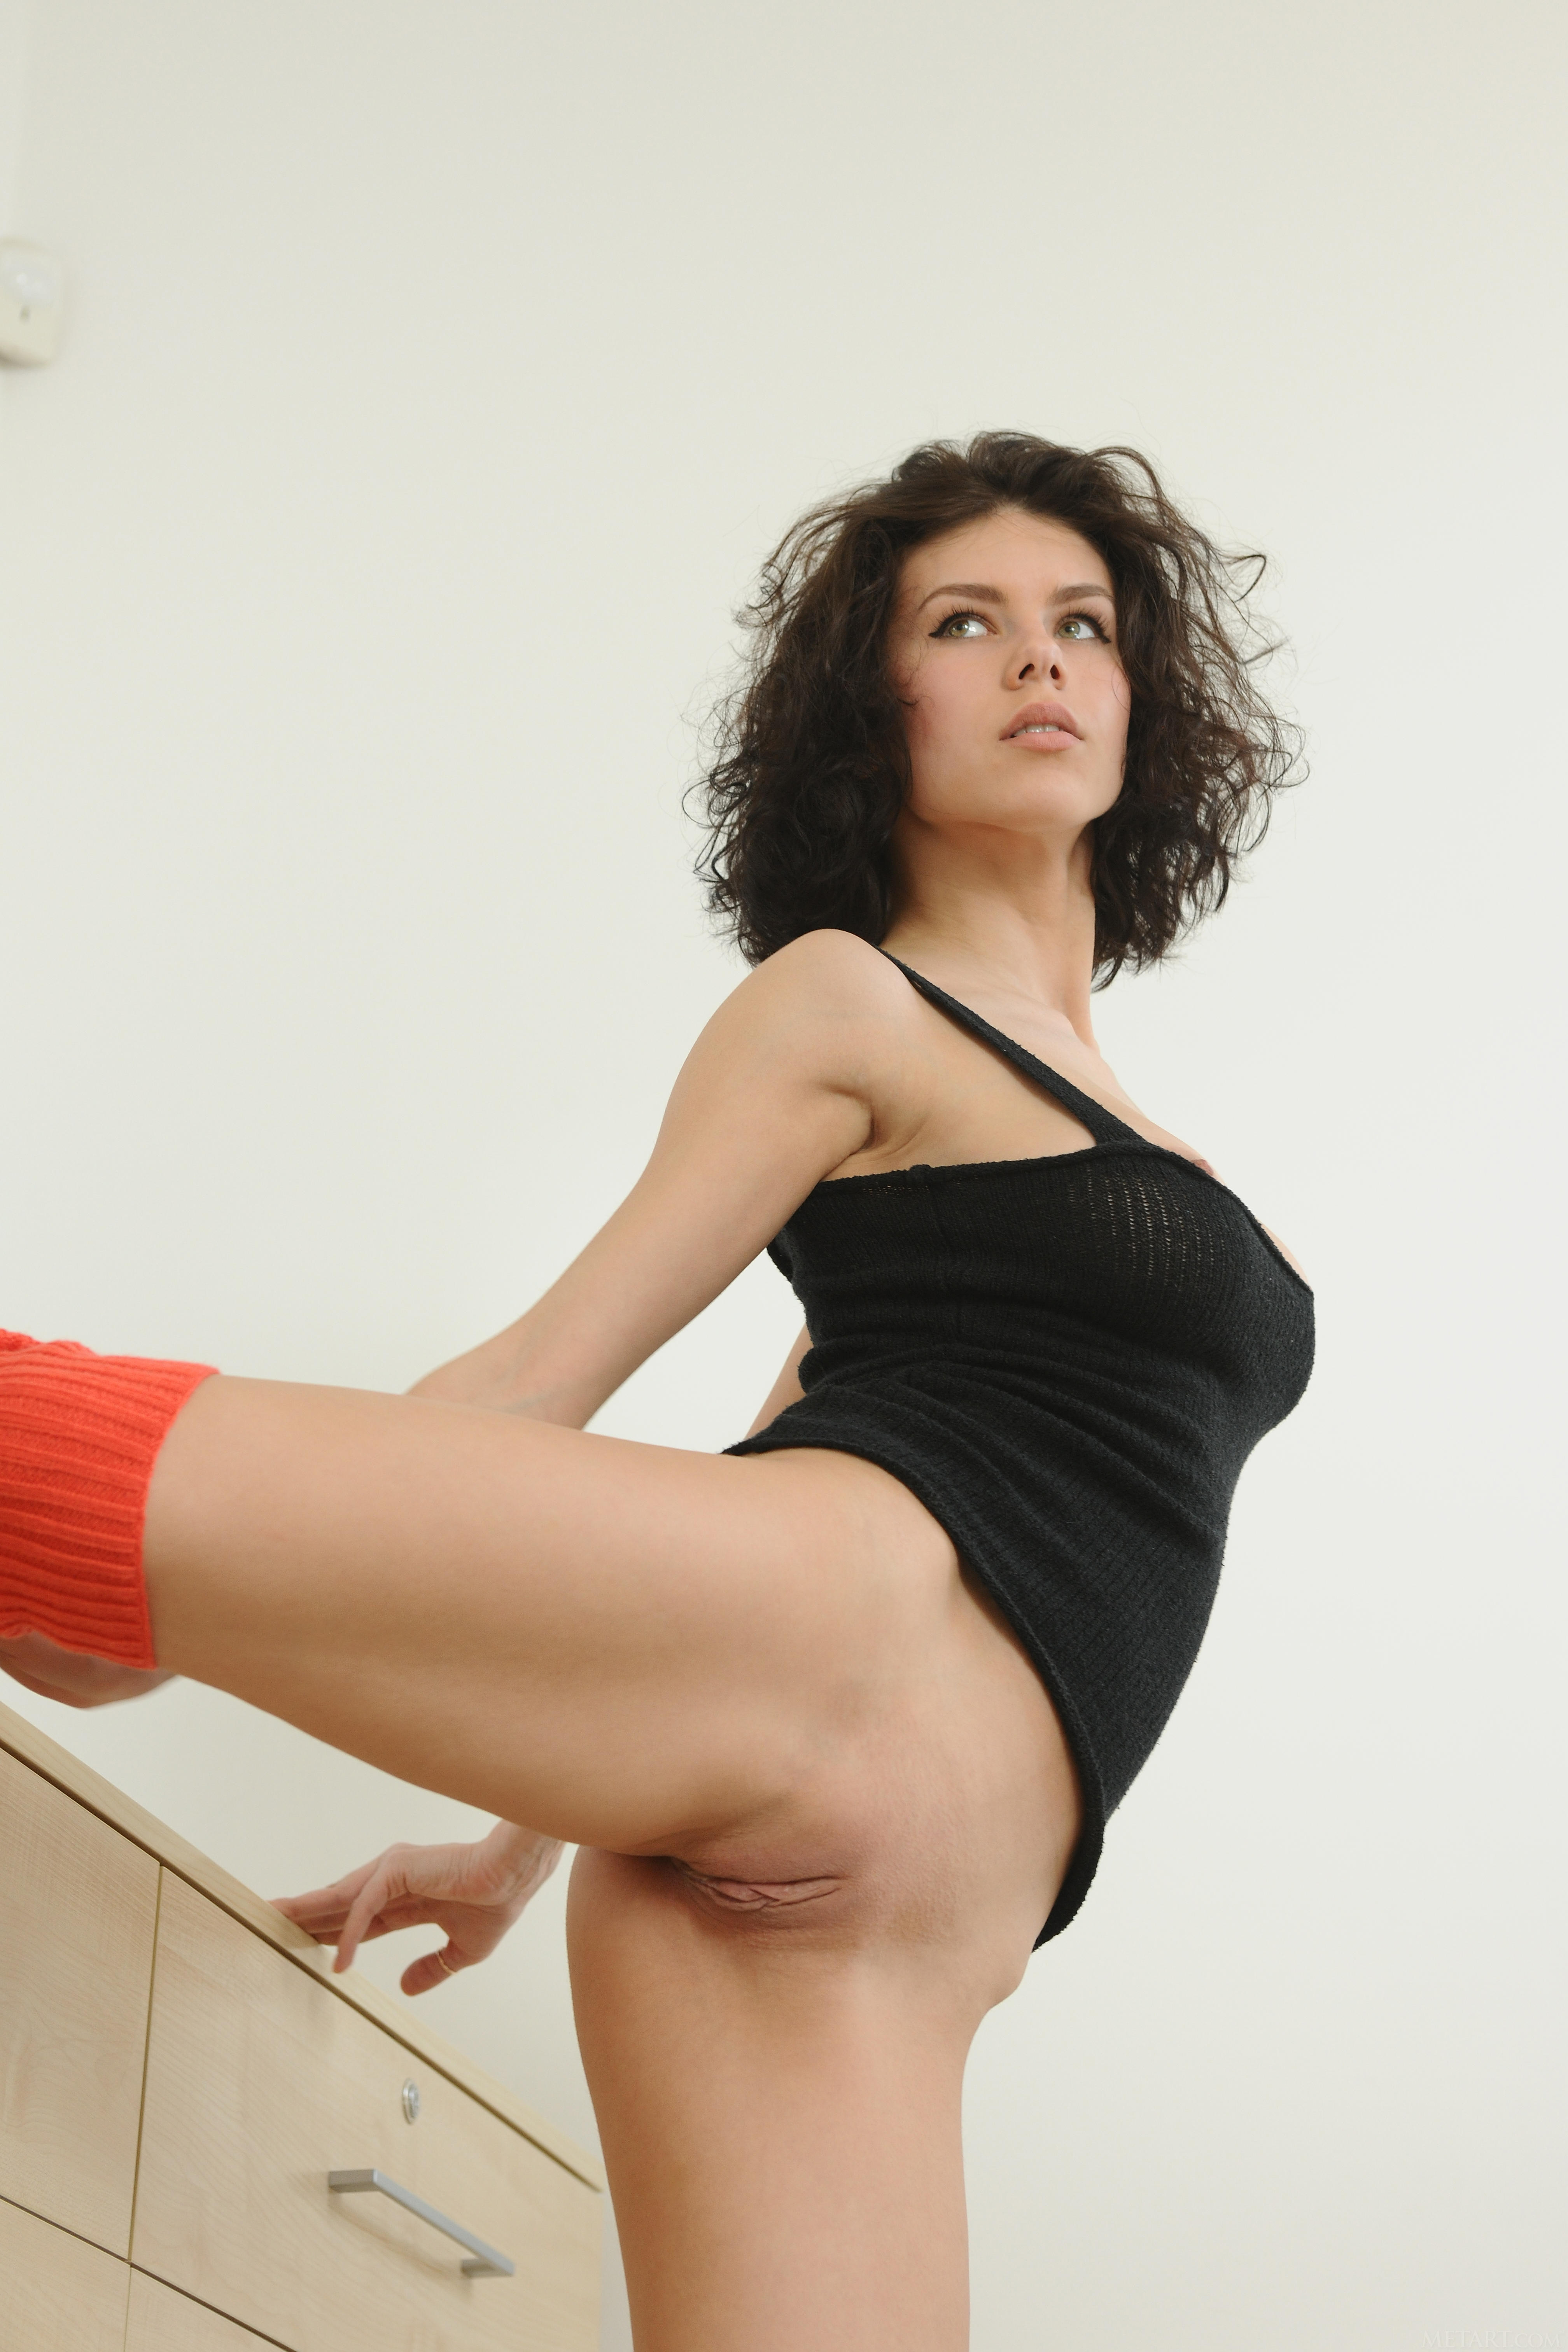 naked girl leg warmers pictures